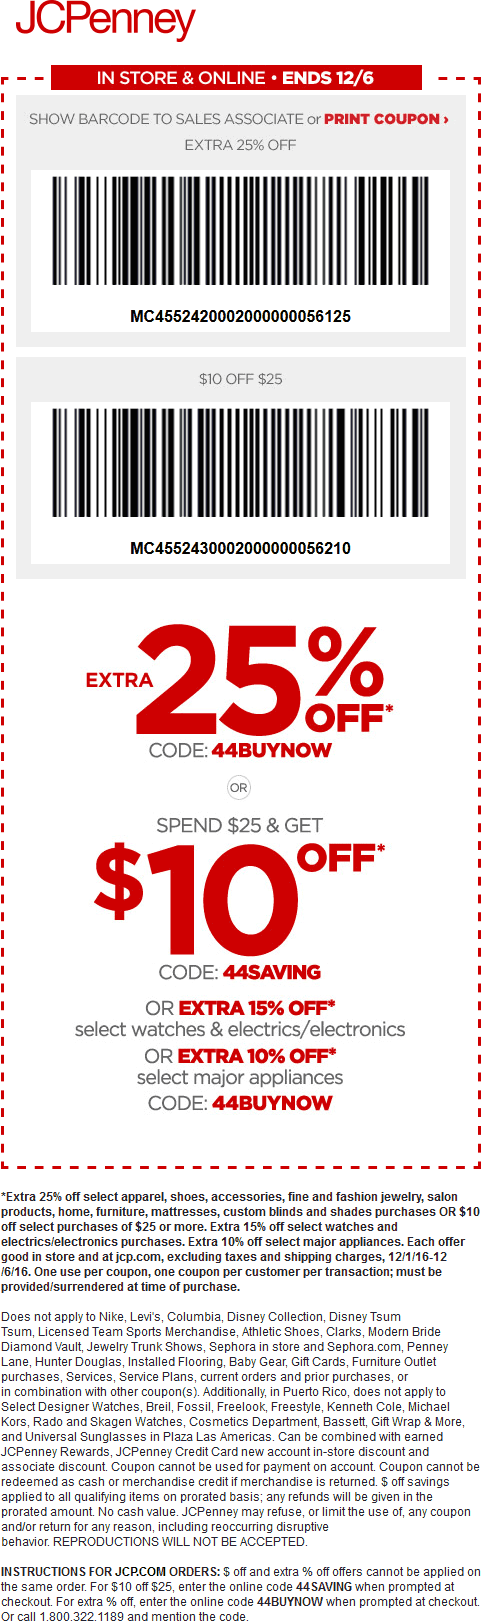 JCPenney.com Promo Coupon $10 off $25 & 25% off at JCPenney, or online via promo code 44SAVING